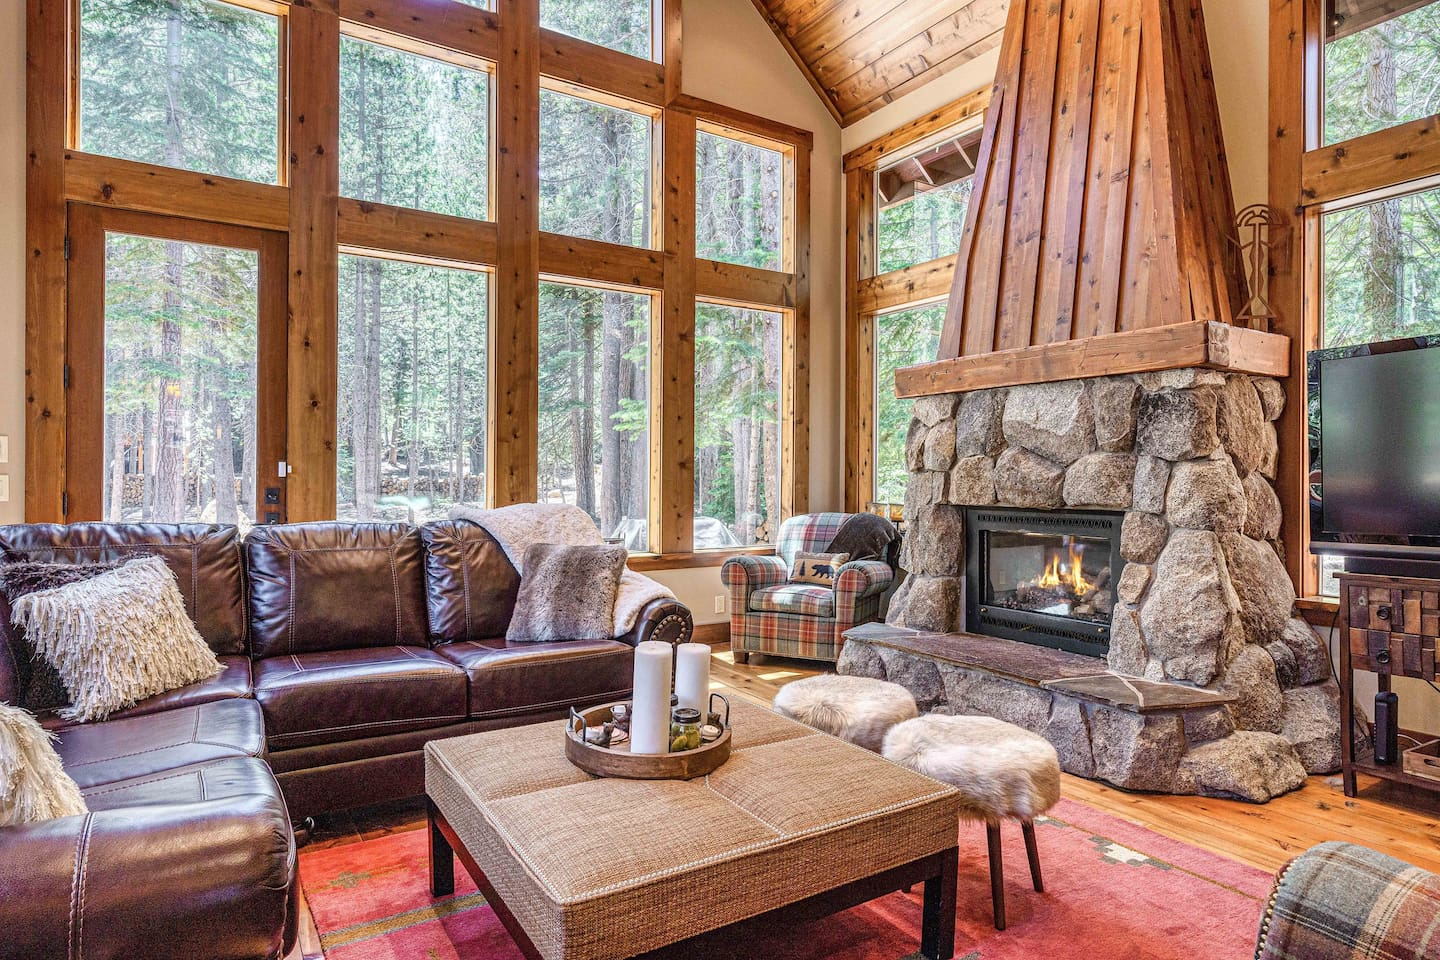 Welcome to Truckee! This Tahoe Donner dream is professionally managed by TurnKey Vacation Rentals. Cozy up around the gas fireplace with stone surround in the main living area.